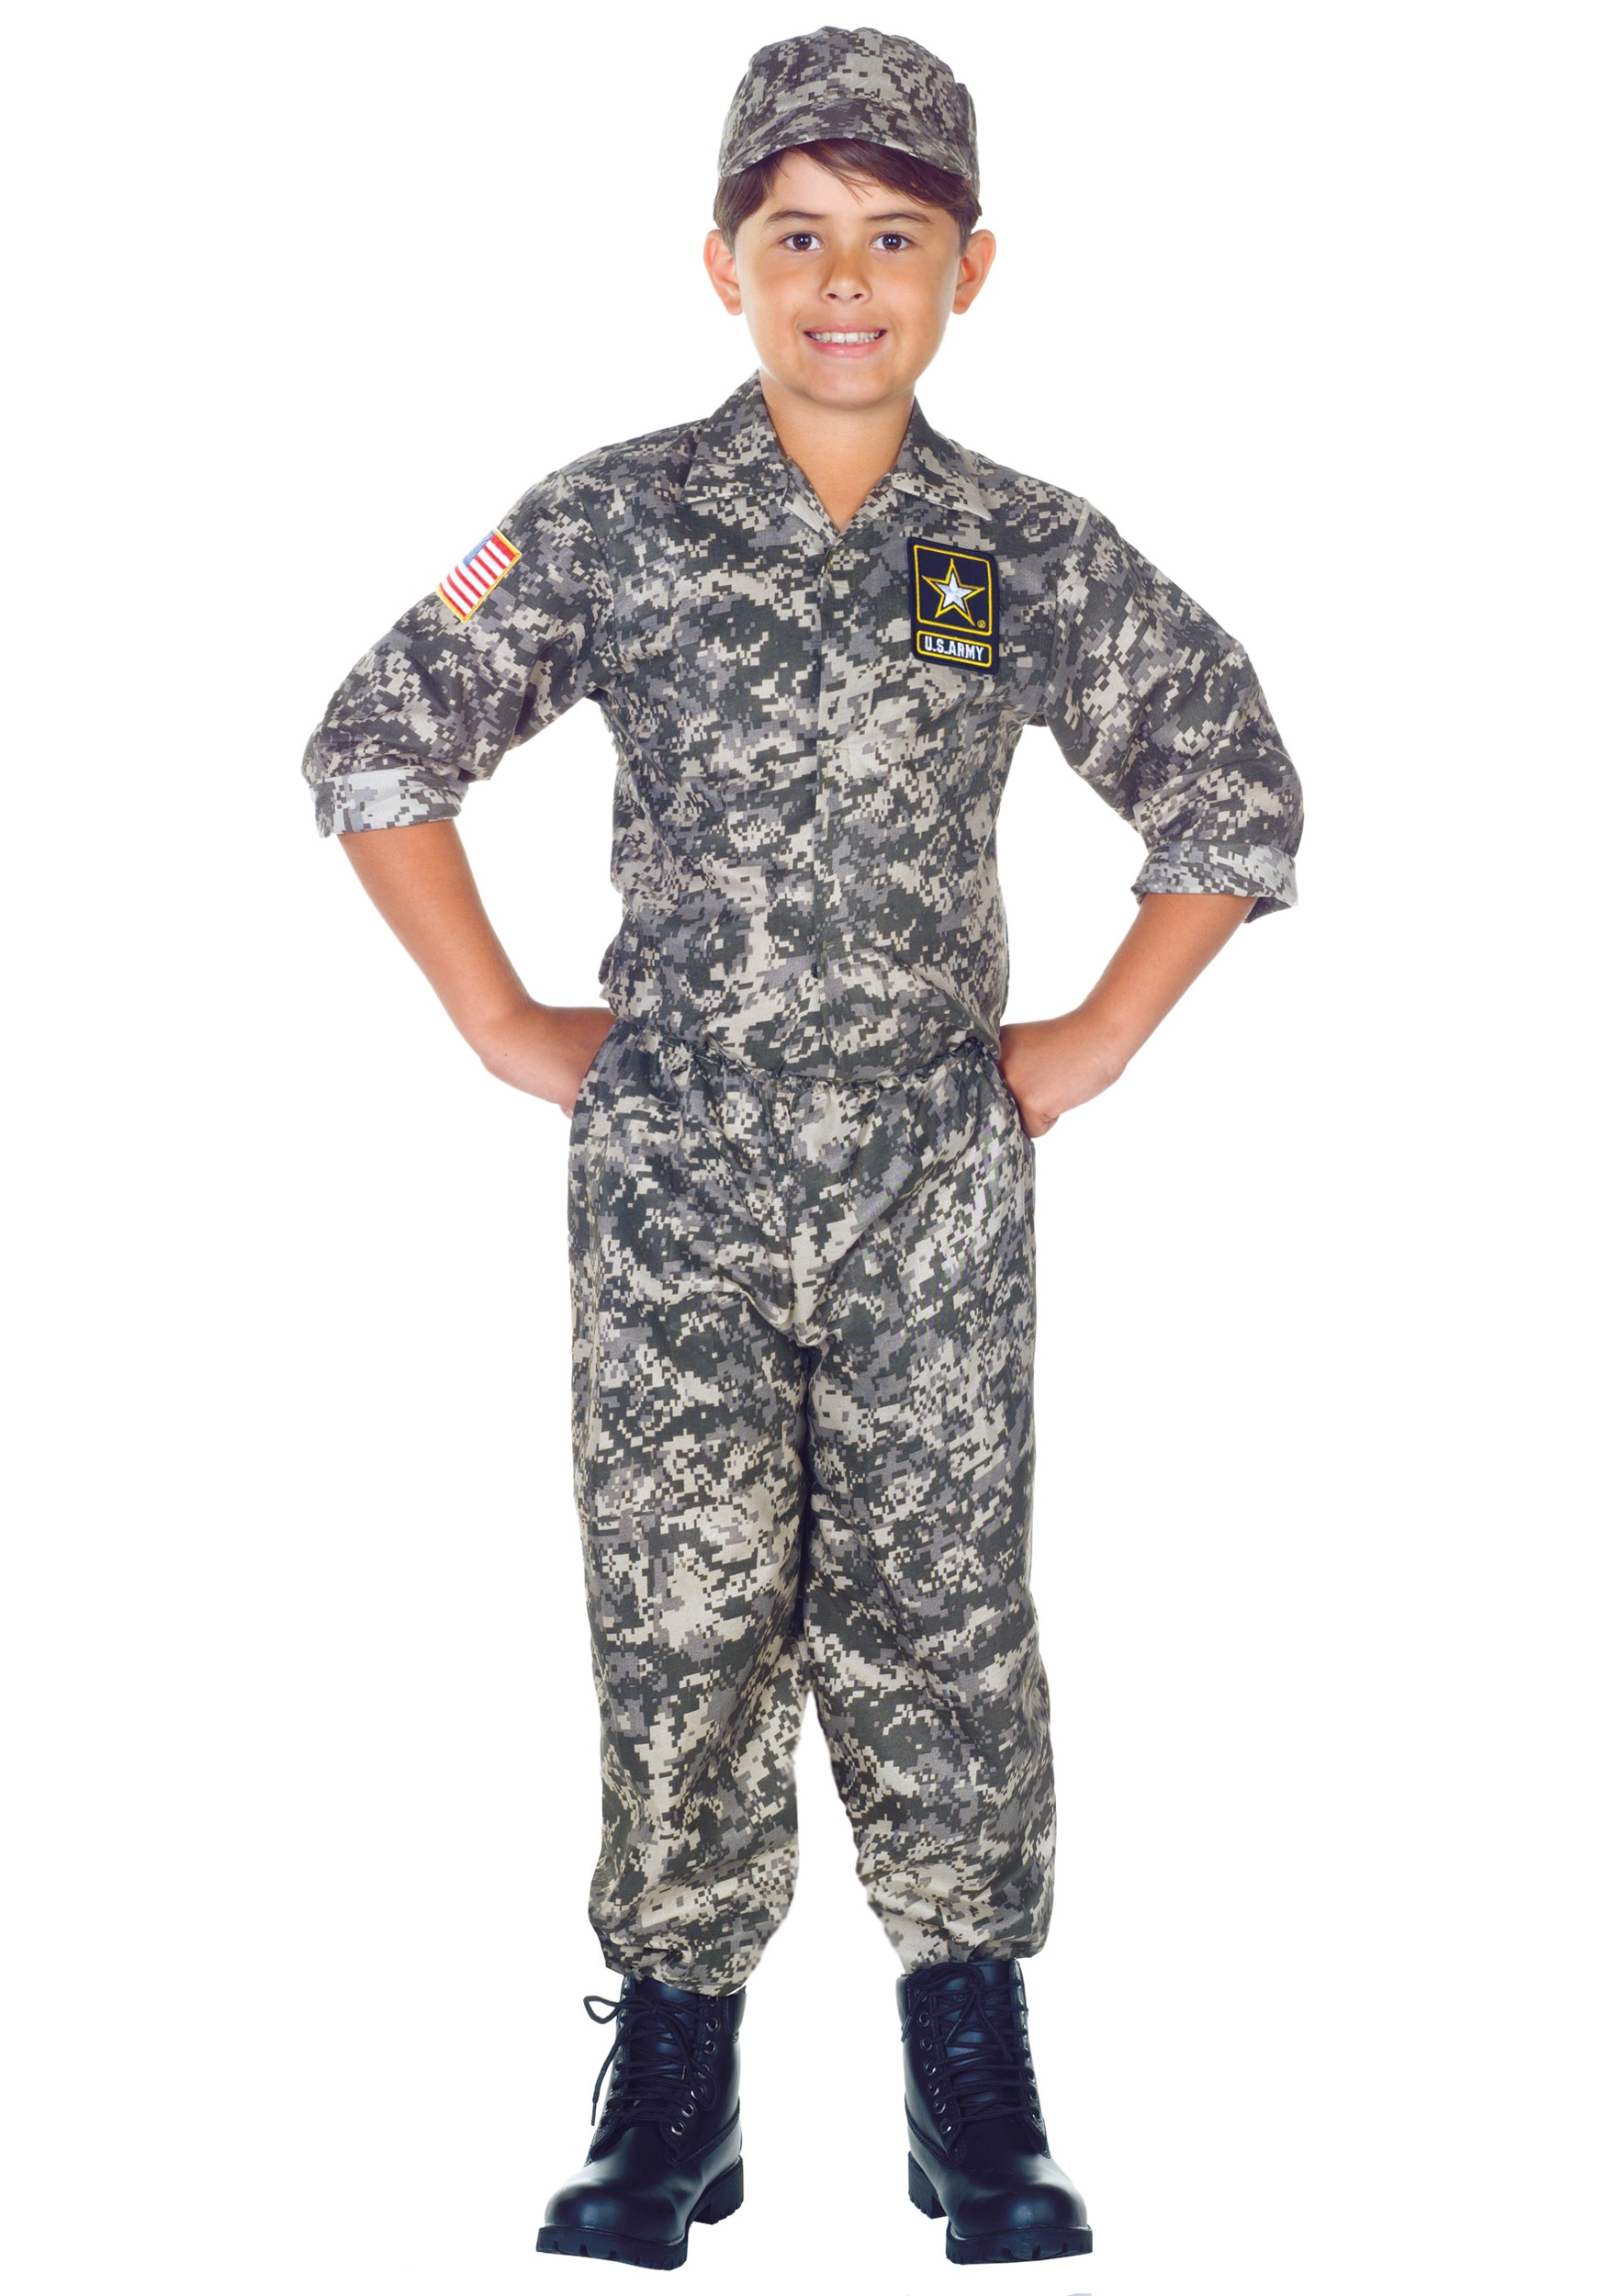 Kids U.S. Army Camo Costume - Boys' Military Uniform Costumes